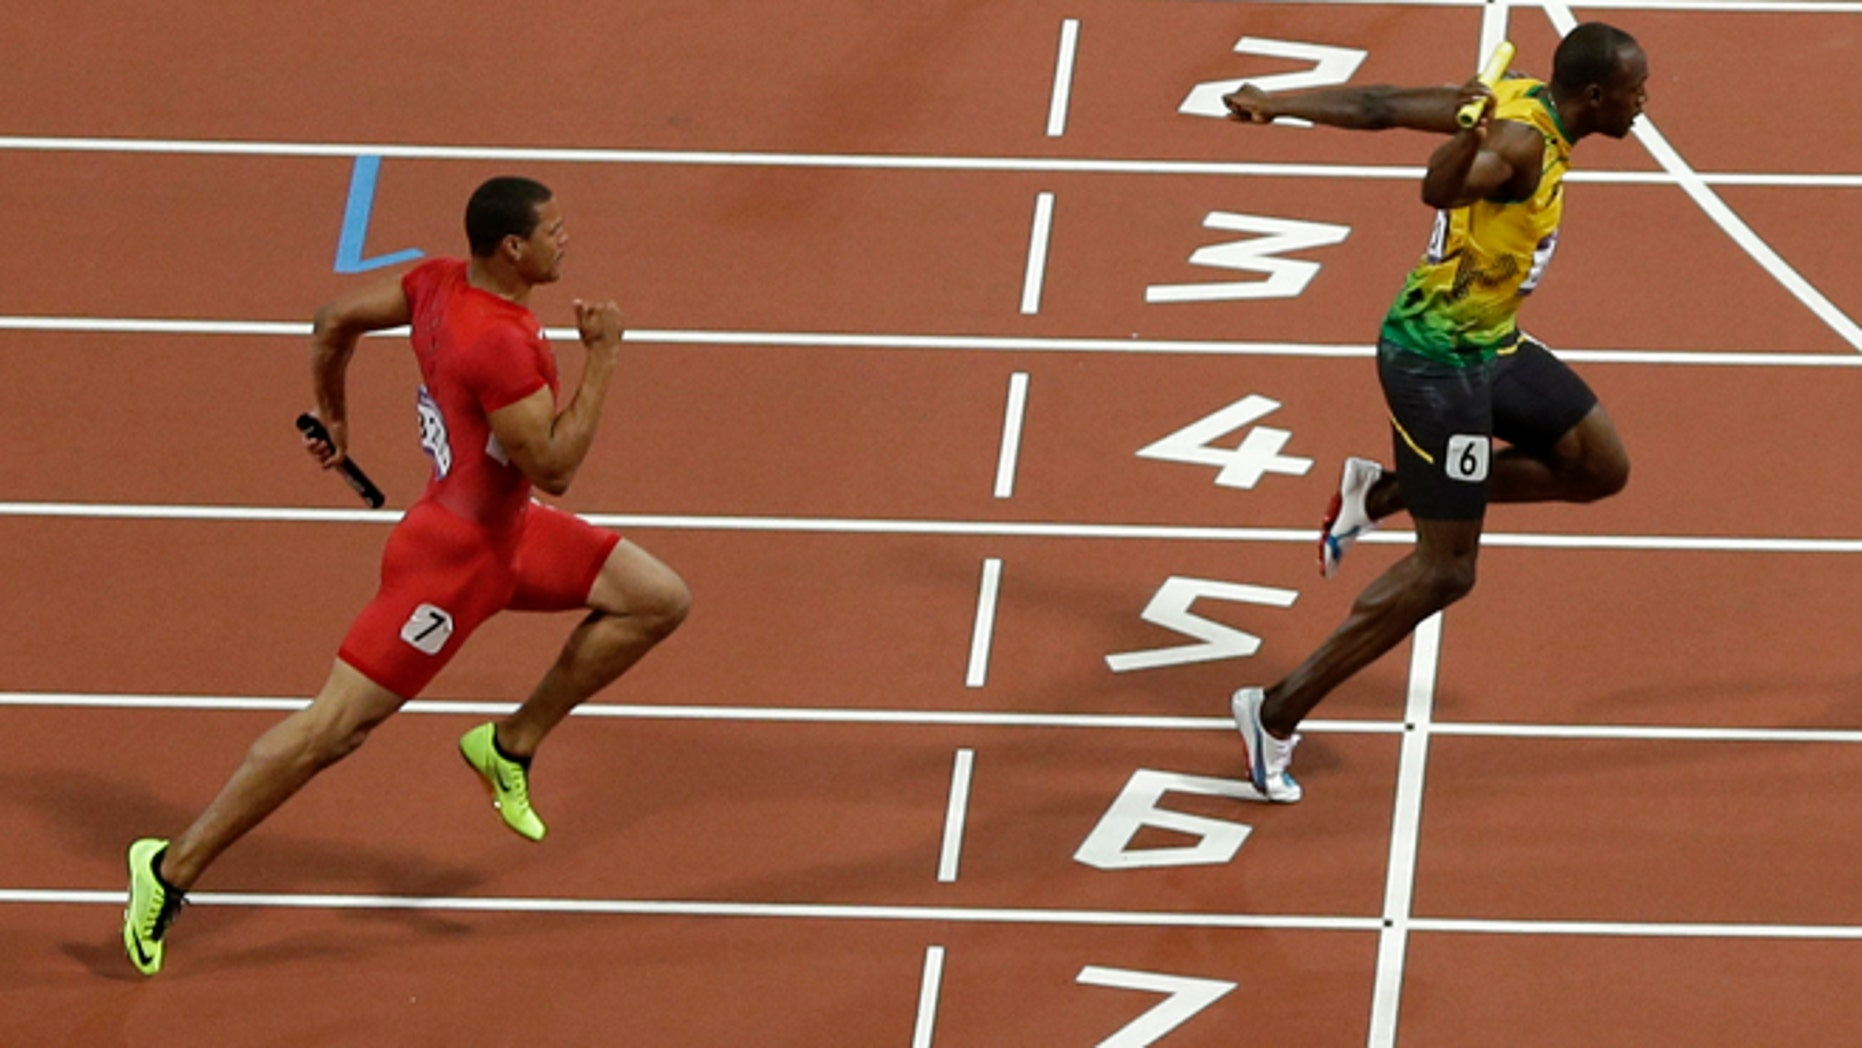 Aug. 11, 2012: Jamaica's Usain Bolt crosses the finish line ahead of United States' Ryan Bailey to win the men's 4x100 relay at the London Olympics.